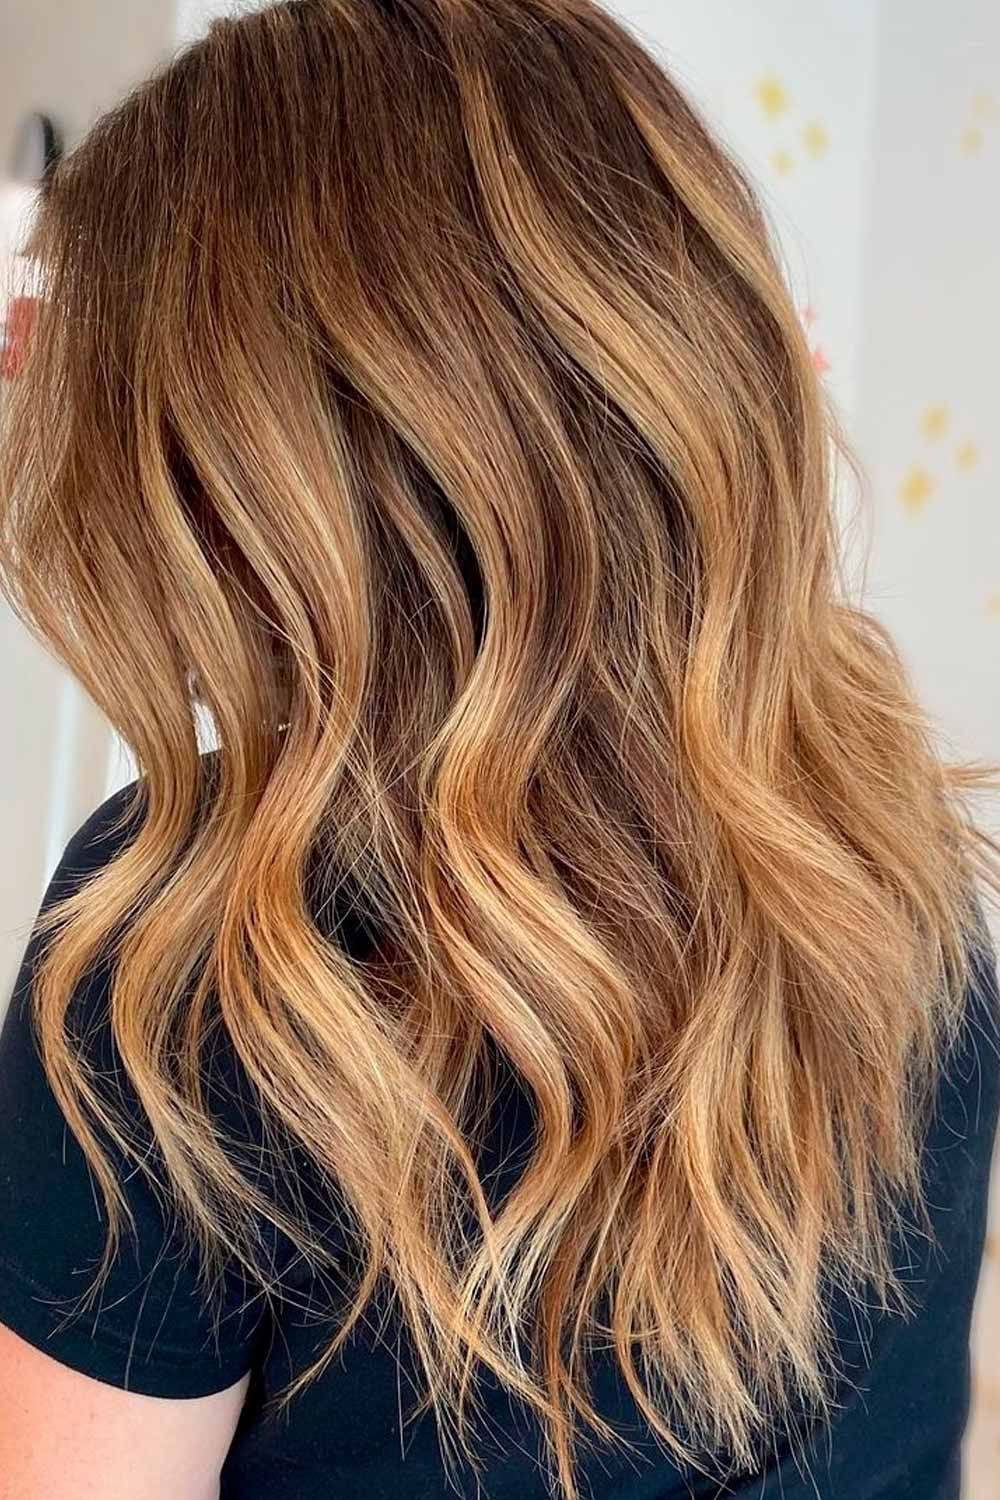 Chocolate Brown Hair Color With Honey Highlights, honey chestnut brown hair color, warm honey brown hair, honey colored highlights on brown hair, brown honey hair color